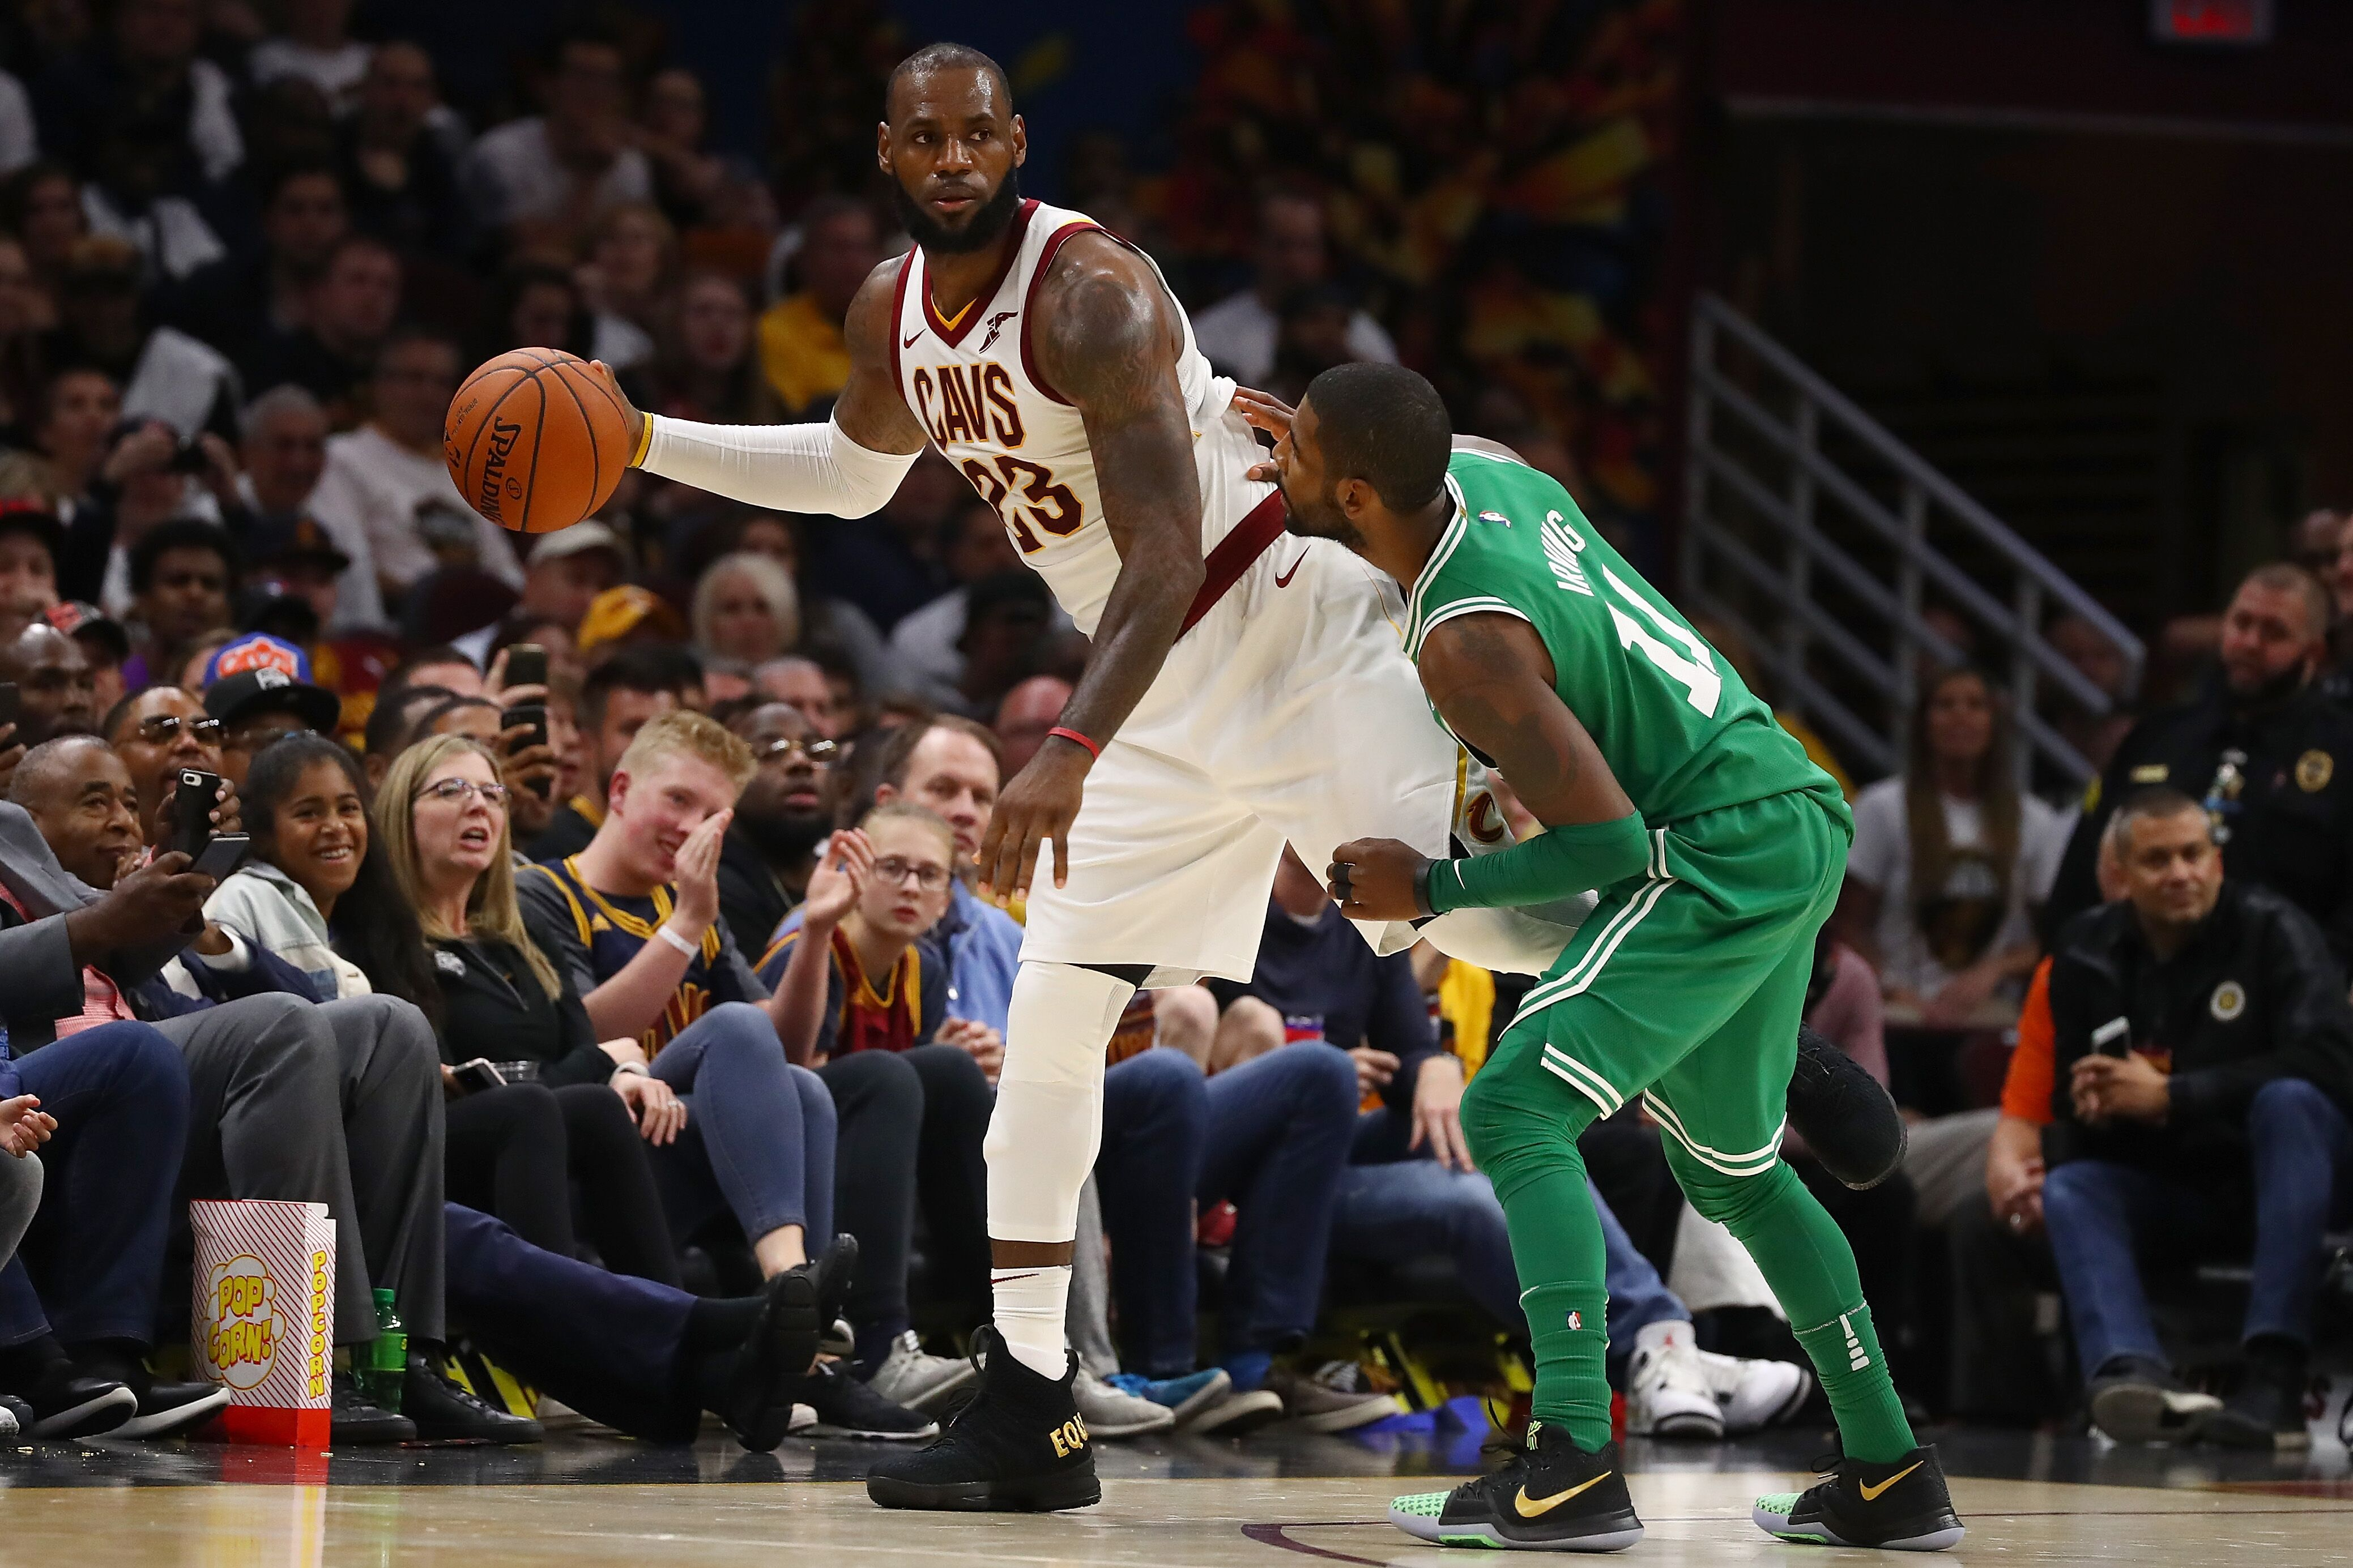 862591794-boston-celtics-vs-cleveland-cavaliers.jpg